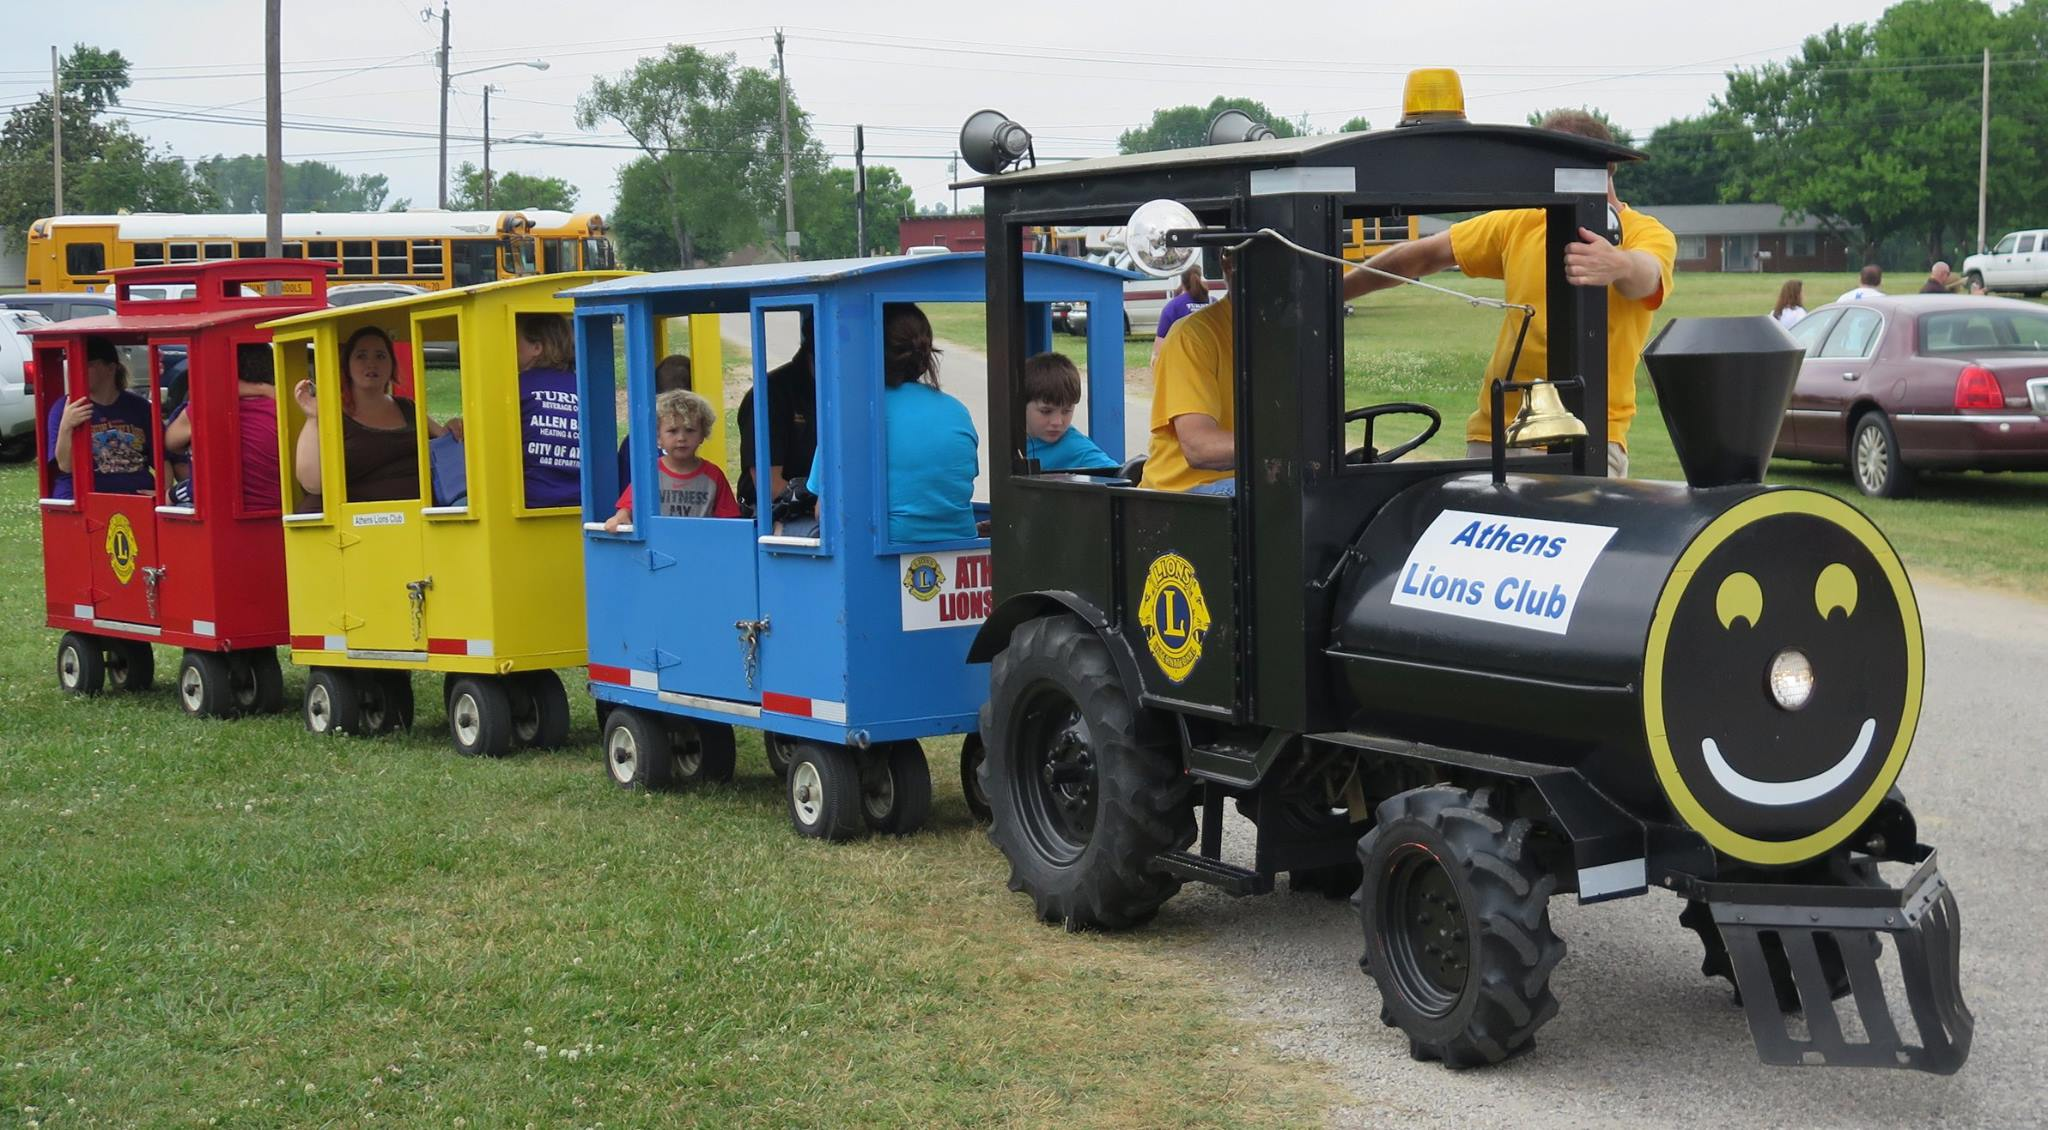 The Lions Club Train runs at various community events